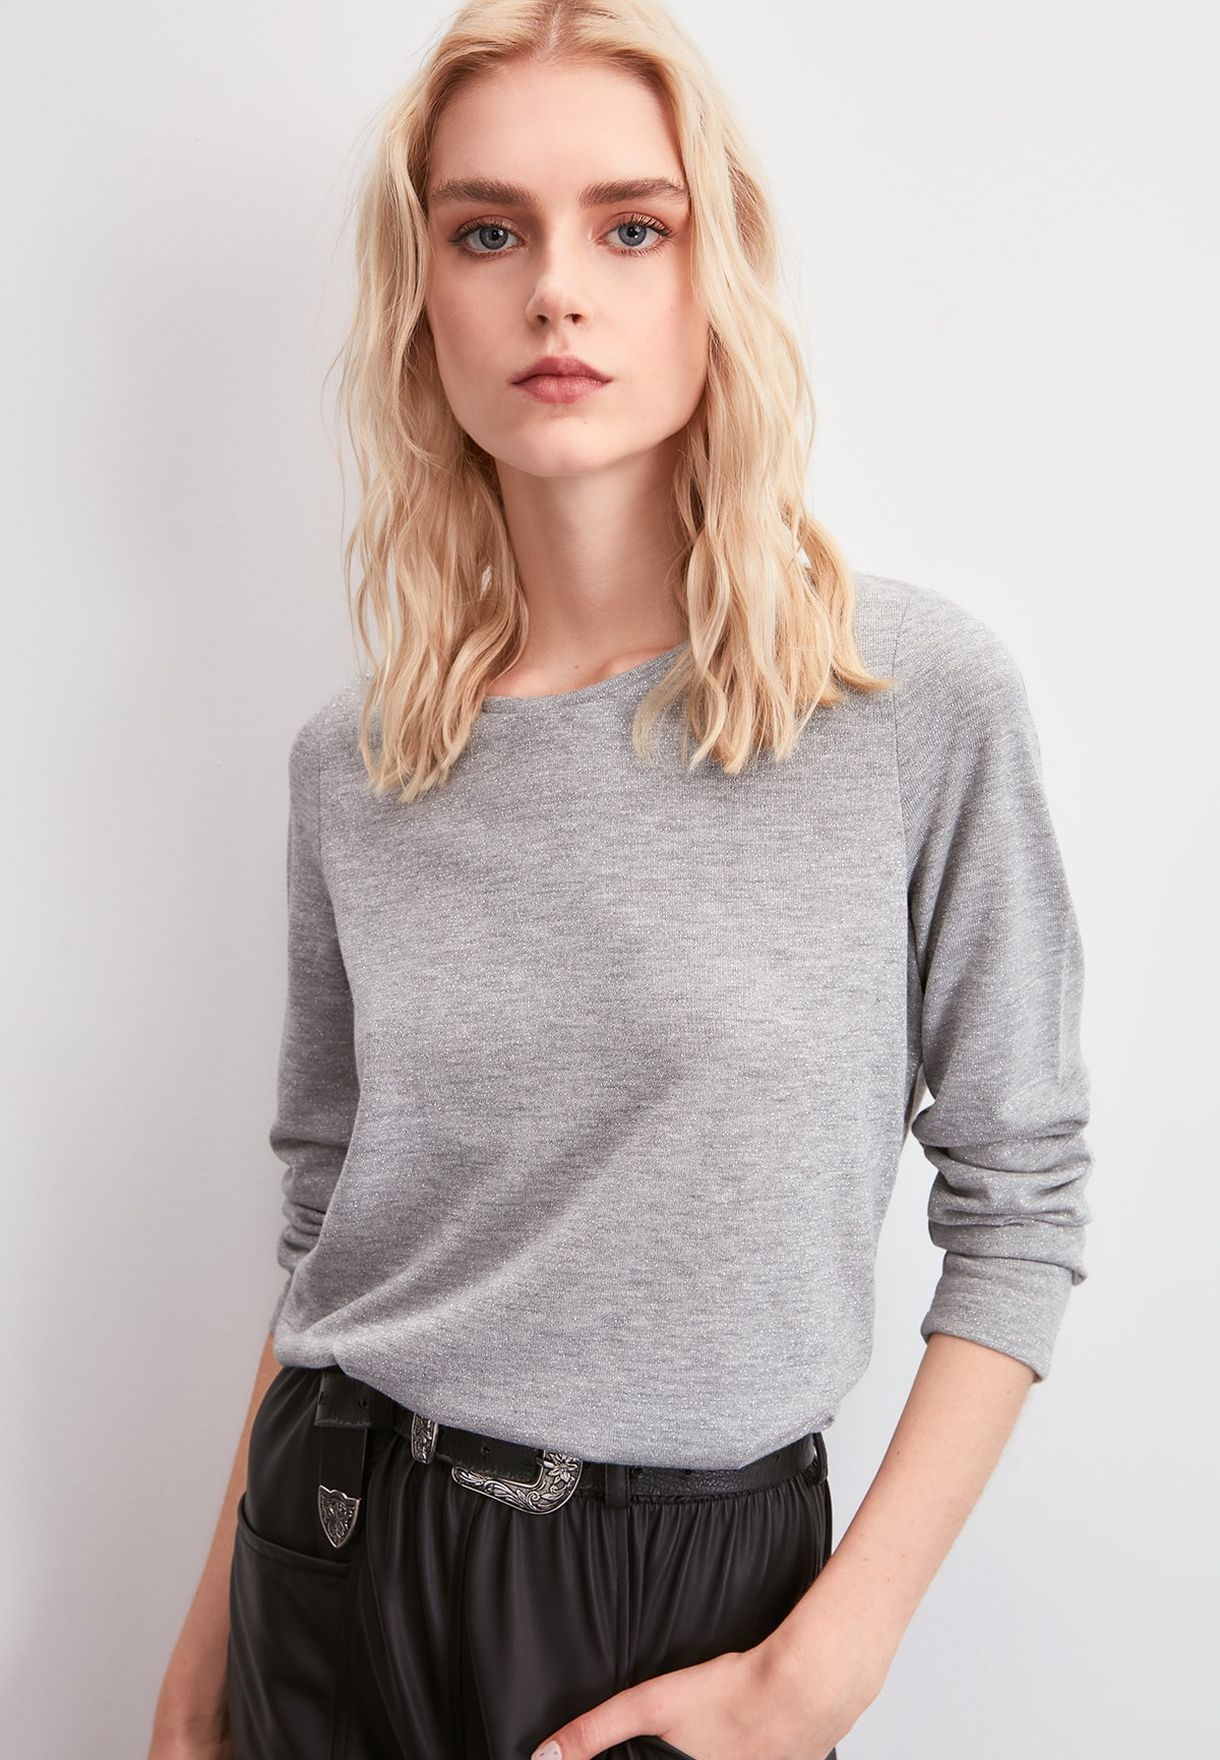 Silvery Knitted Top